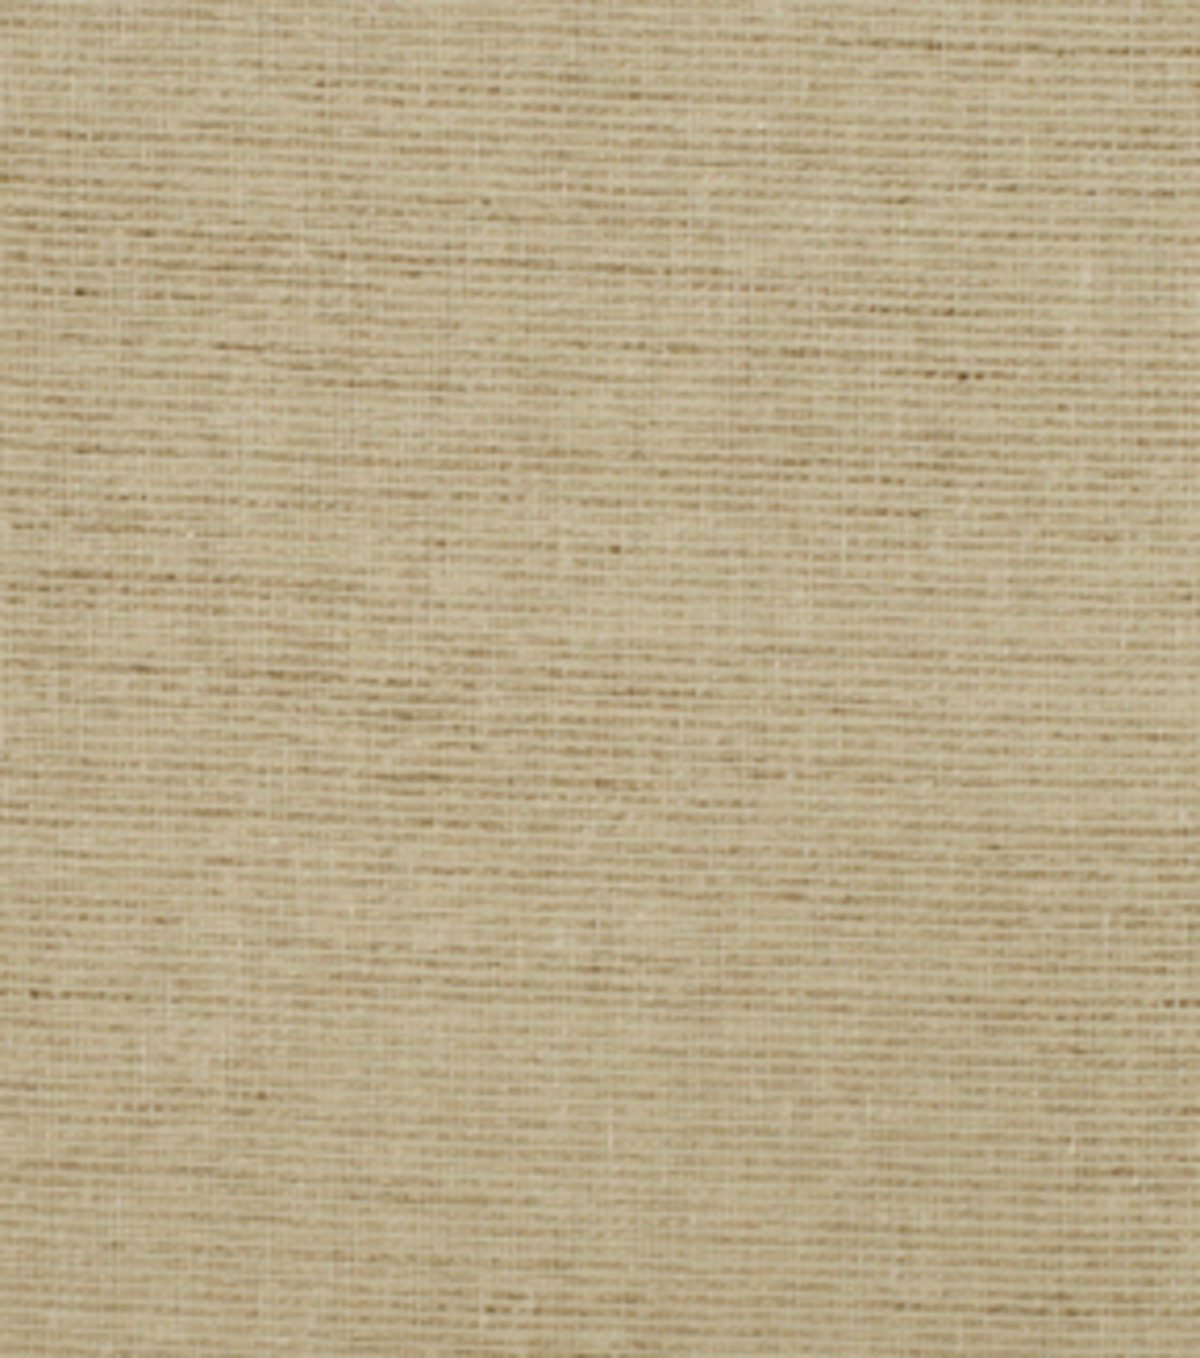 Home Decor 8\u0022x8\u0022 Fabric Swatch-Eaton Square Baez Chestnut